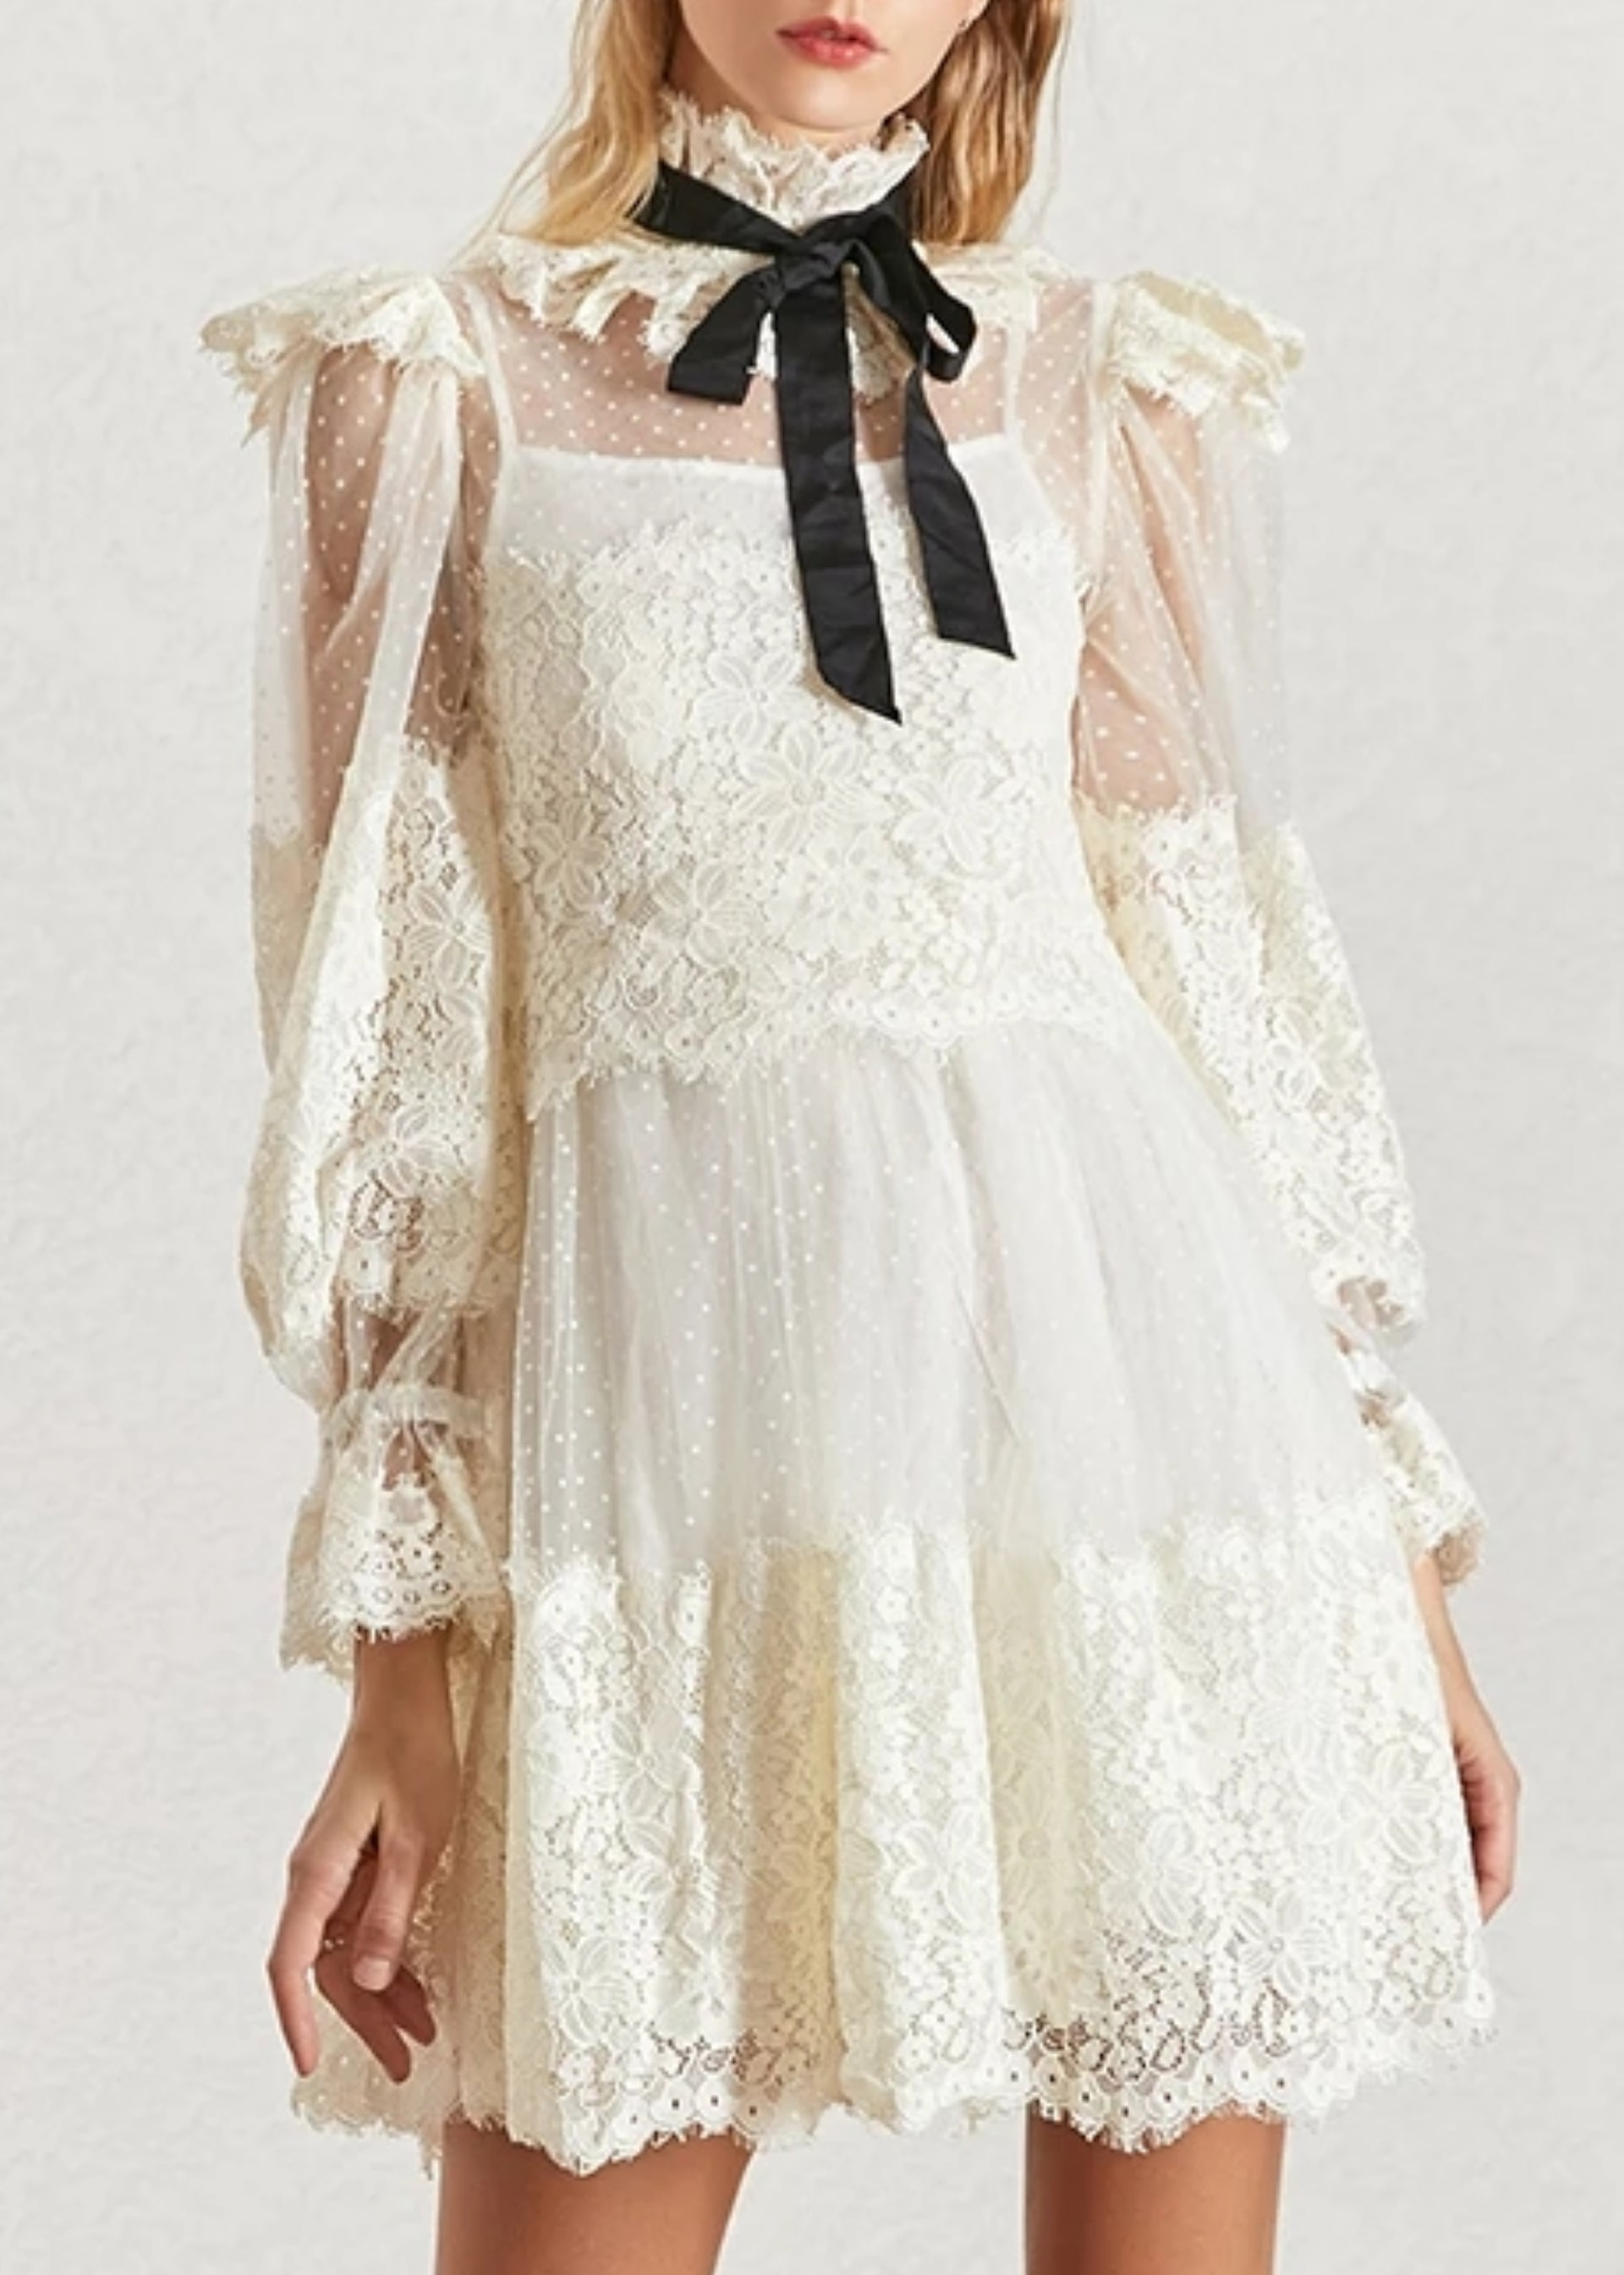 Alysse Vintage Lace Dress